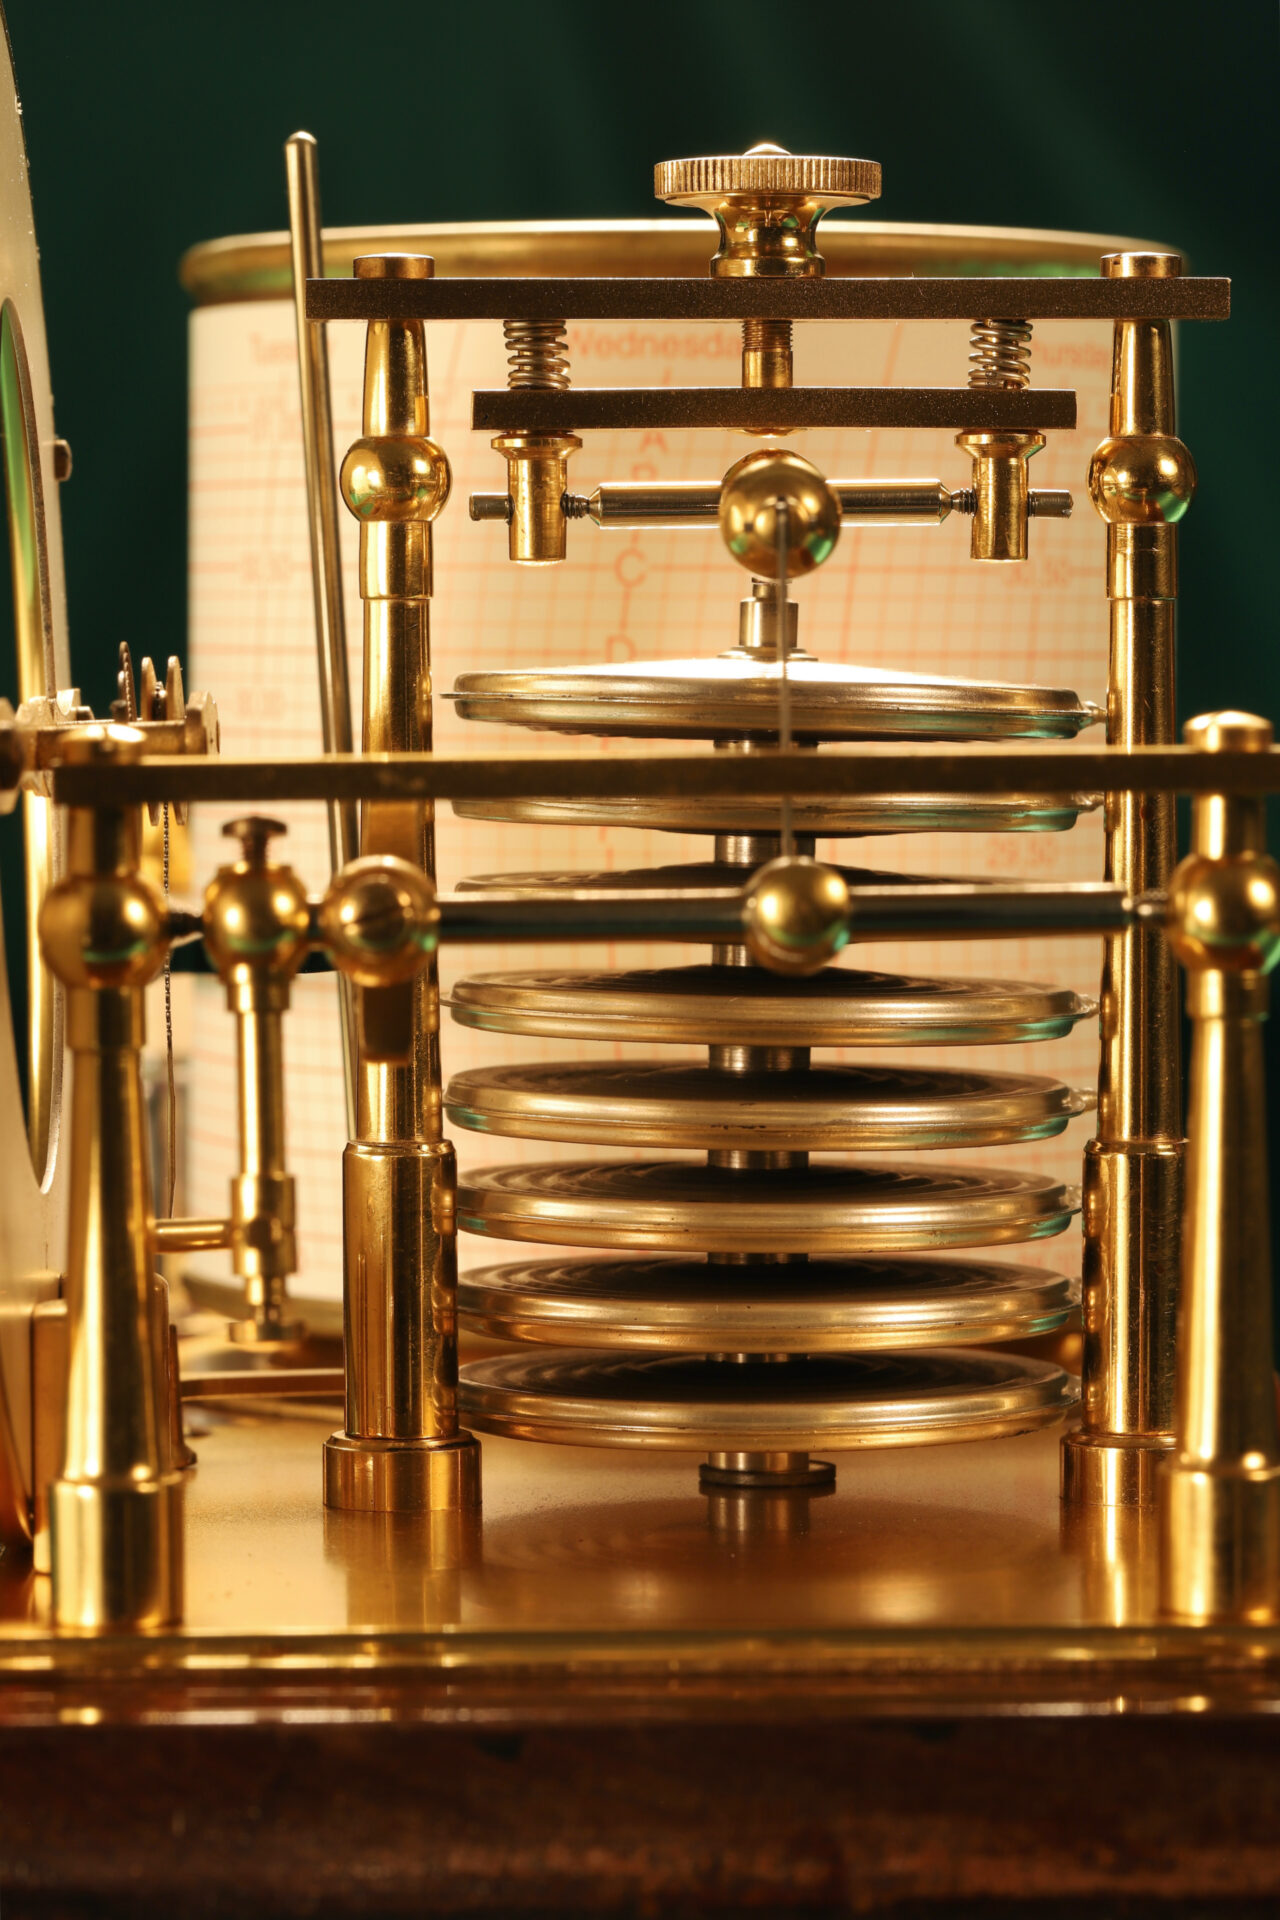 Close up of Short & Mason Barograph No L13629 c1930 taken from righthand end